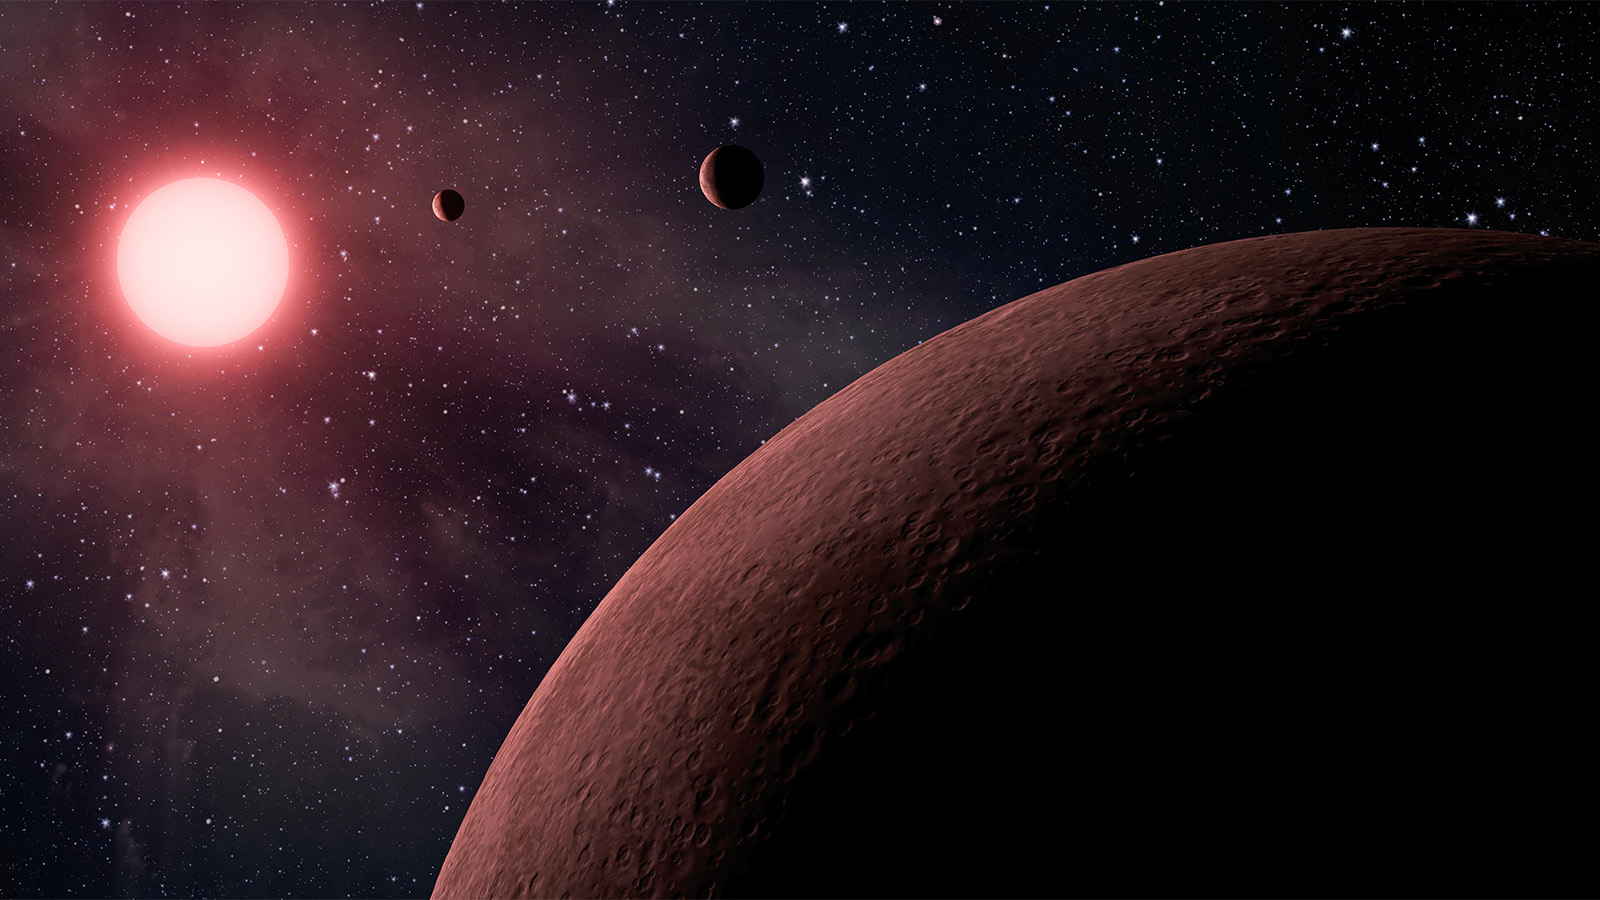 Exoplanets and signatures for life